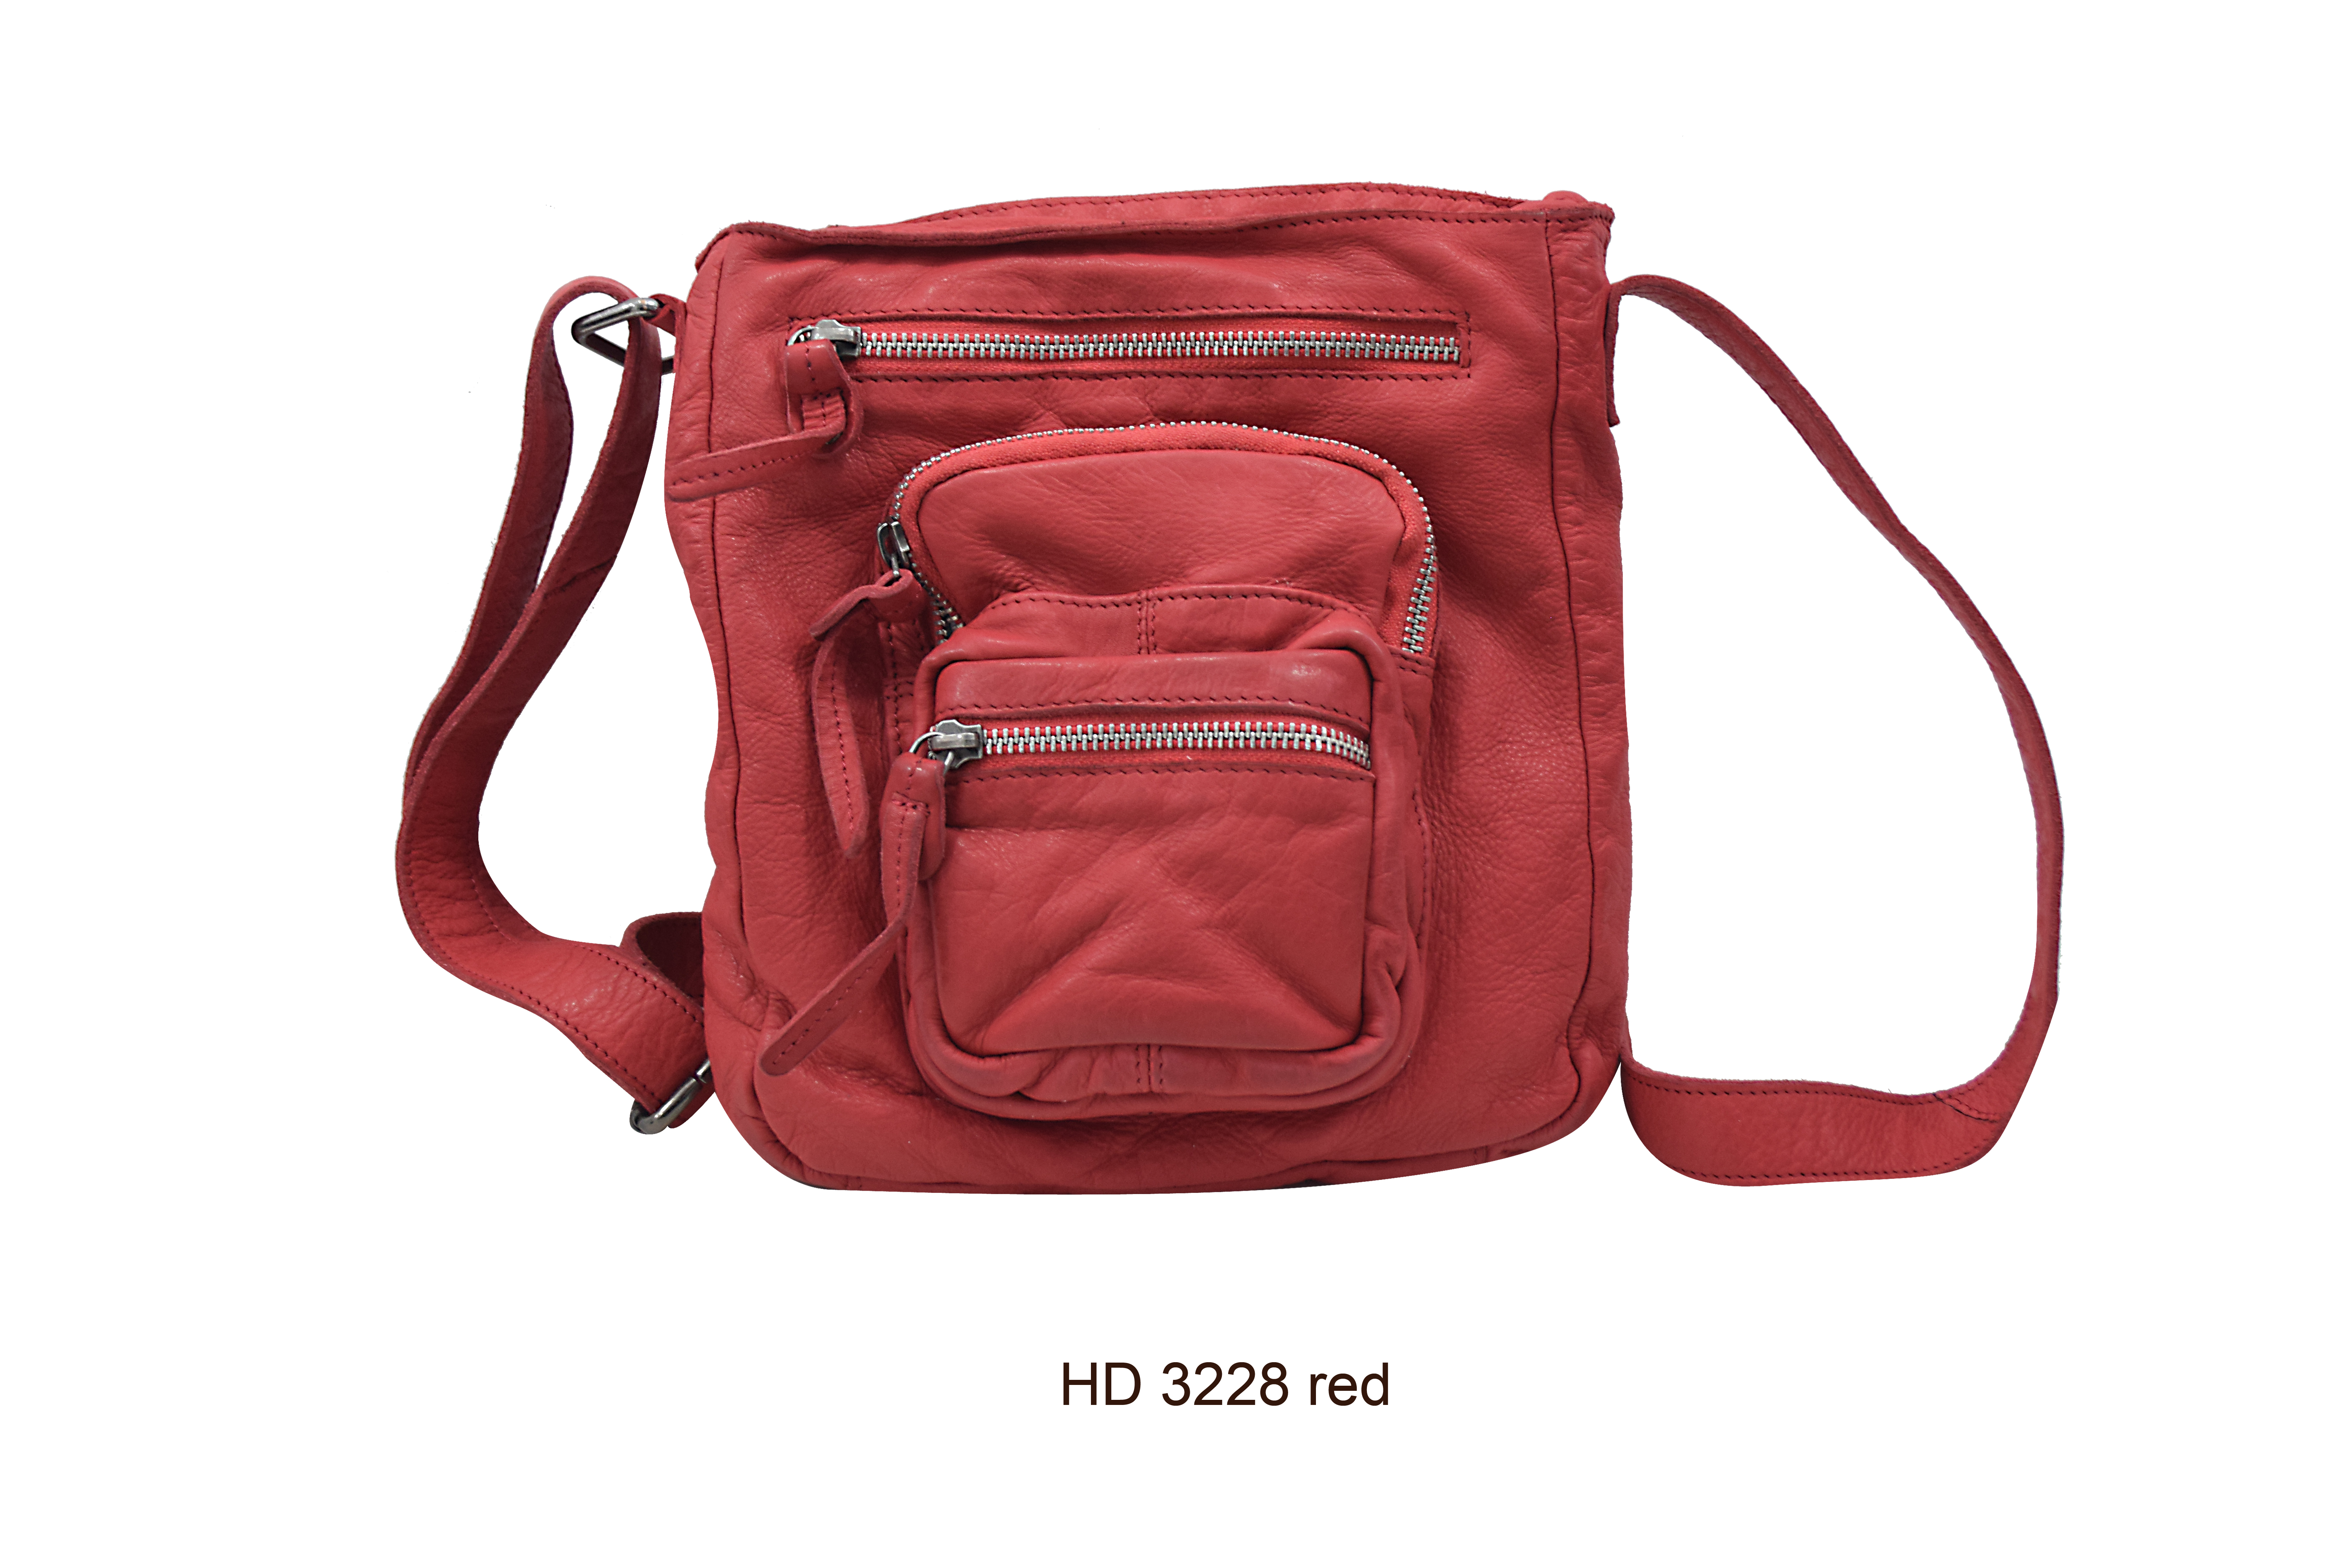 hd-3228-red